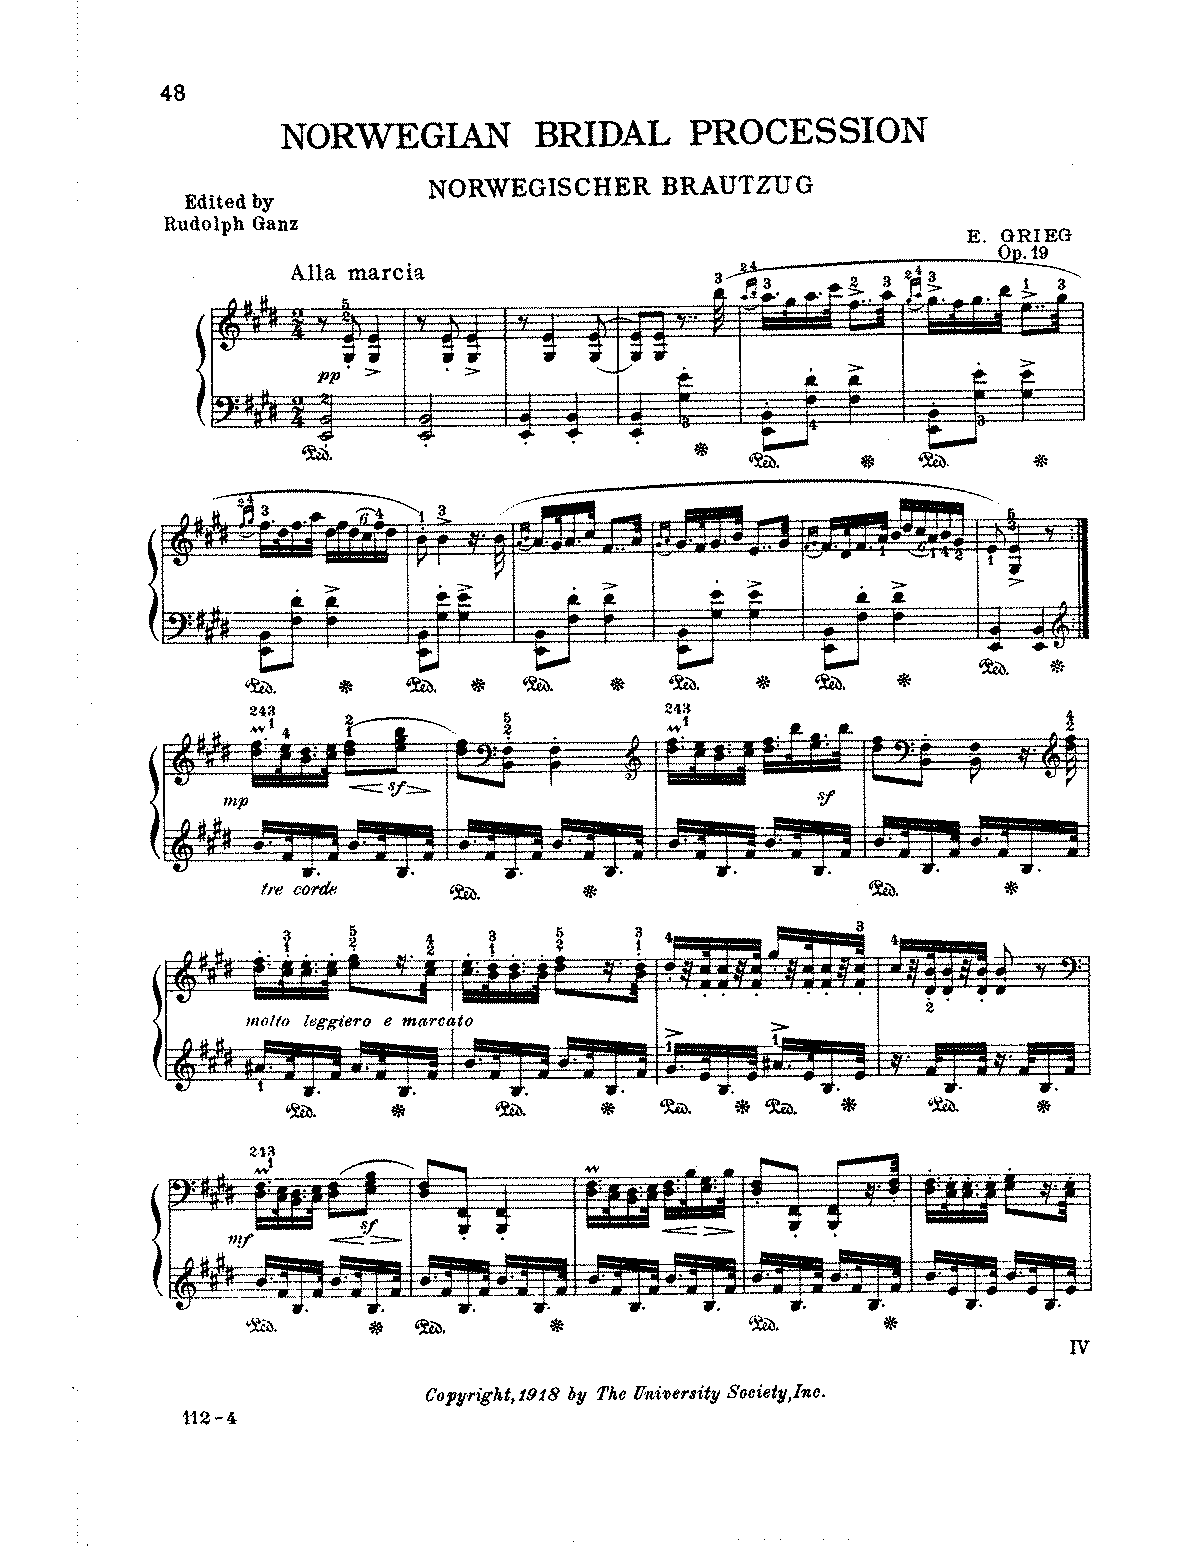 Grieg - Norwegian Bridal Procession, Op 19.pdf